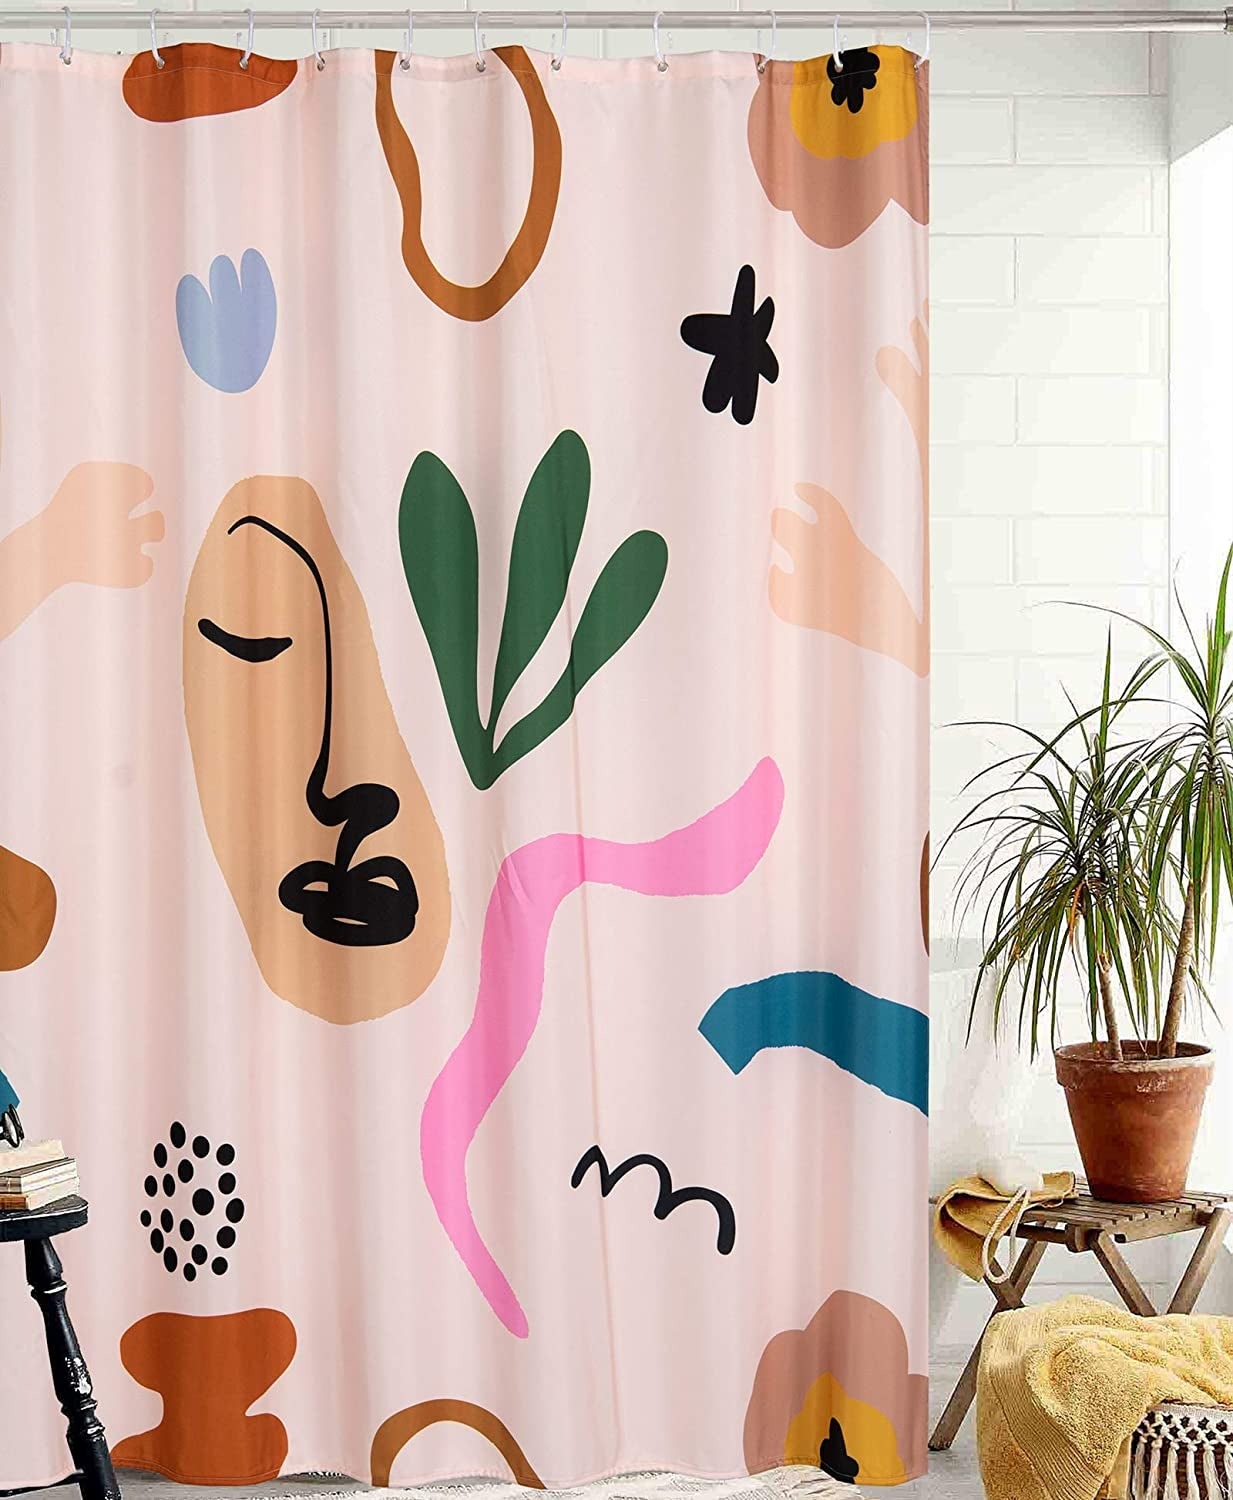 the pale pink shower curtain printed with colorful flowers, squiggles, and an abstract face